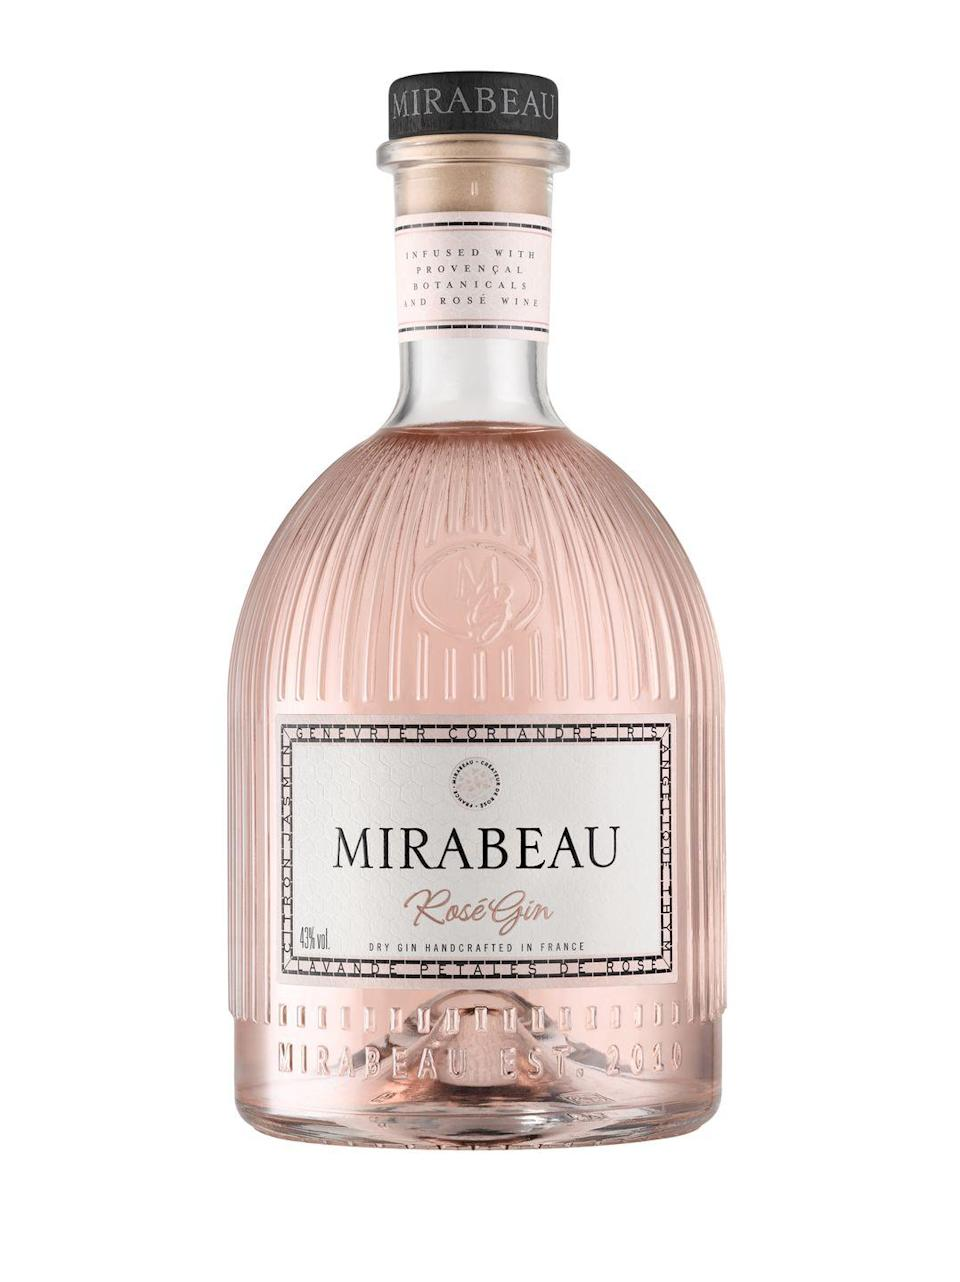 "<p><a class=""link rapid-noclick-resp"" href=""https://go.redirectingat.com?id=127X1599956&url=https%3A%2F%2Fwww.waitrosecellar.com%2Fall-gin%2Fmirabeau-rose-gin-797717&sref=https%3A%2F%2Fwww.harpersbazaar.com%2Fuk%2Fculture%2Fgoing-out%2Fg33523032%2Fbest-gins%2F"" rel=""nofollow noopener"" target=""_blank"" data-ylk=""slk:SHOP"">SHOP</a></p><p>This may be a pink gin but the hue is so pale you'll barely notice, especially if you're mixing it. Made by English winemakers known for their Provence rosés, its starting spirit is purely grape-based and there's a dash of rosé in there too, which lends it a wine-like quality with delicate red-fruit and rosy flavours. Truly sophisticated, it could easily be drunk neat, but if you prefer some dilution then choose a lighter tonic and garnish with a sprig of lavender or rosemary.</p><p>£35 / 70cl; 43 per cent ABV</p>"